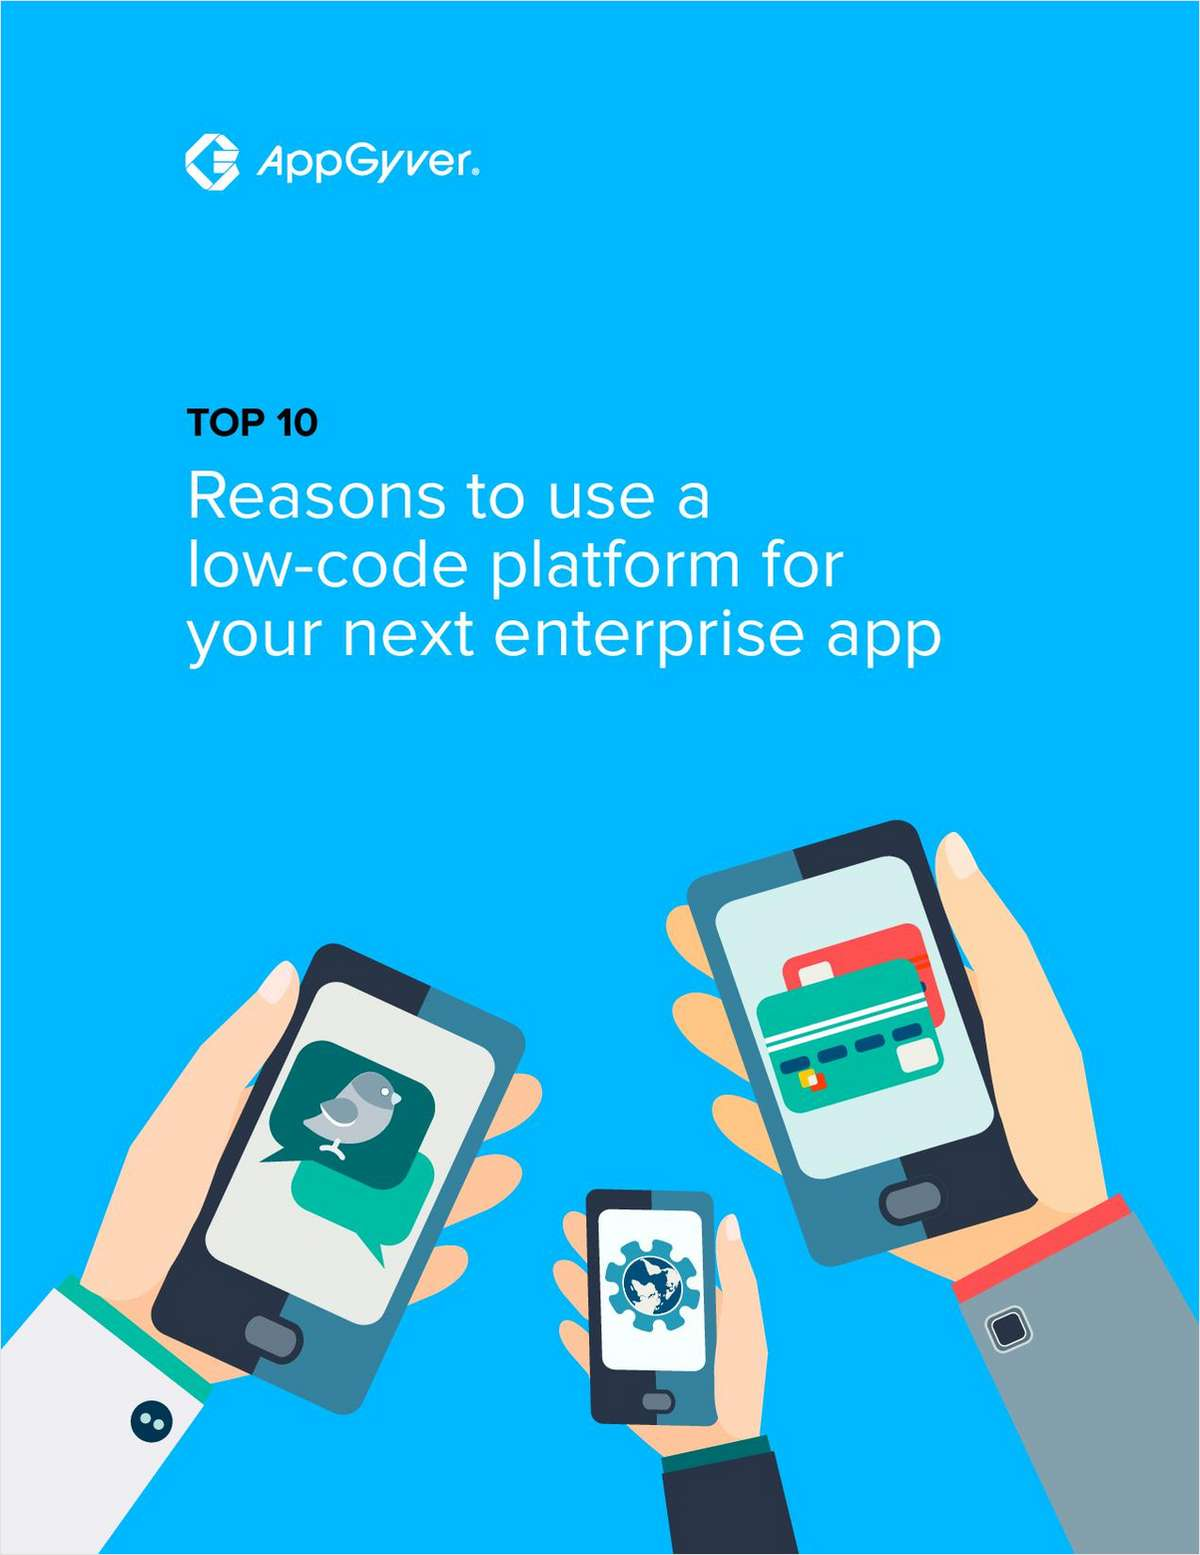 10 Reasons to Use a Low-Code Platform for Your Next Enterprise App